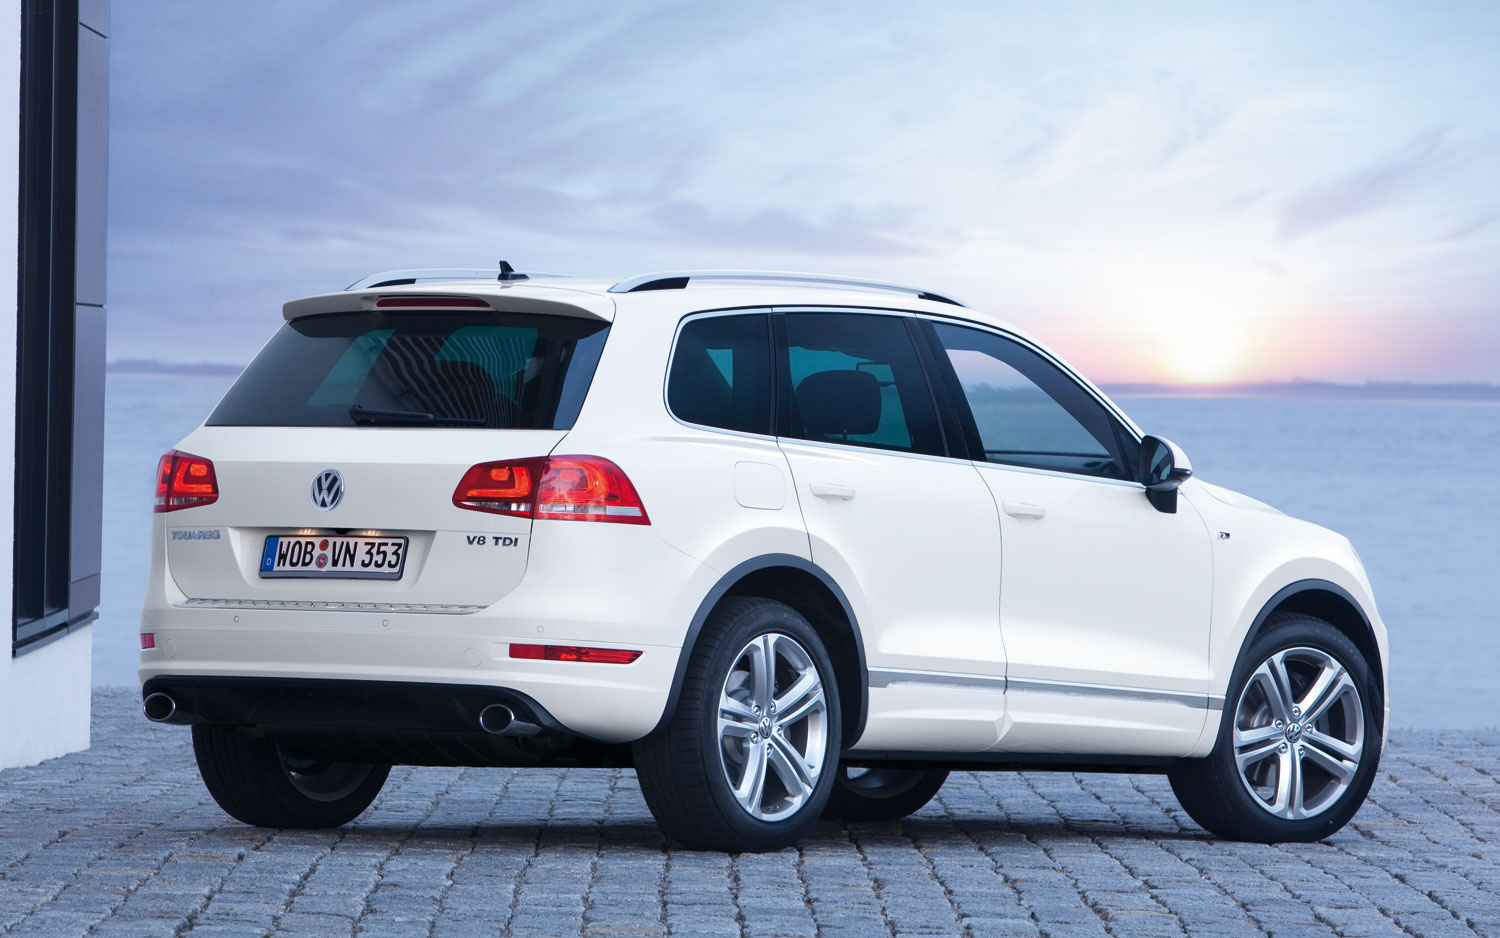 2014 volkswagen touareg information and photos zombiedrive. Black Bedroom Furniture Sets. Home Design Ideas